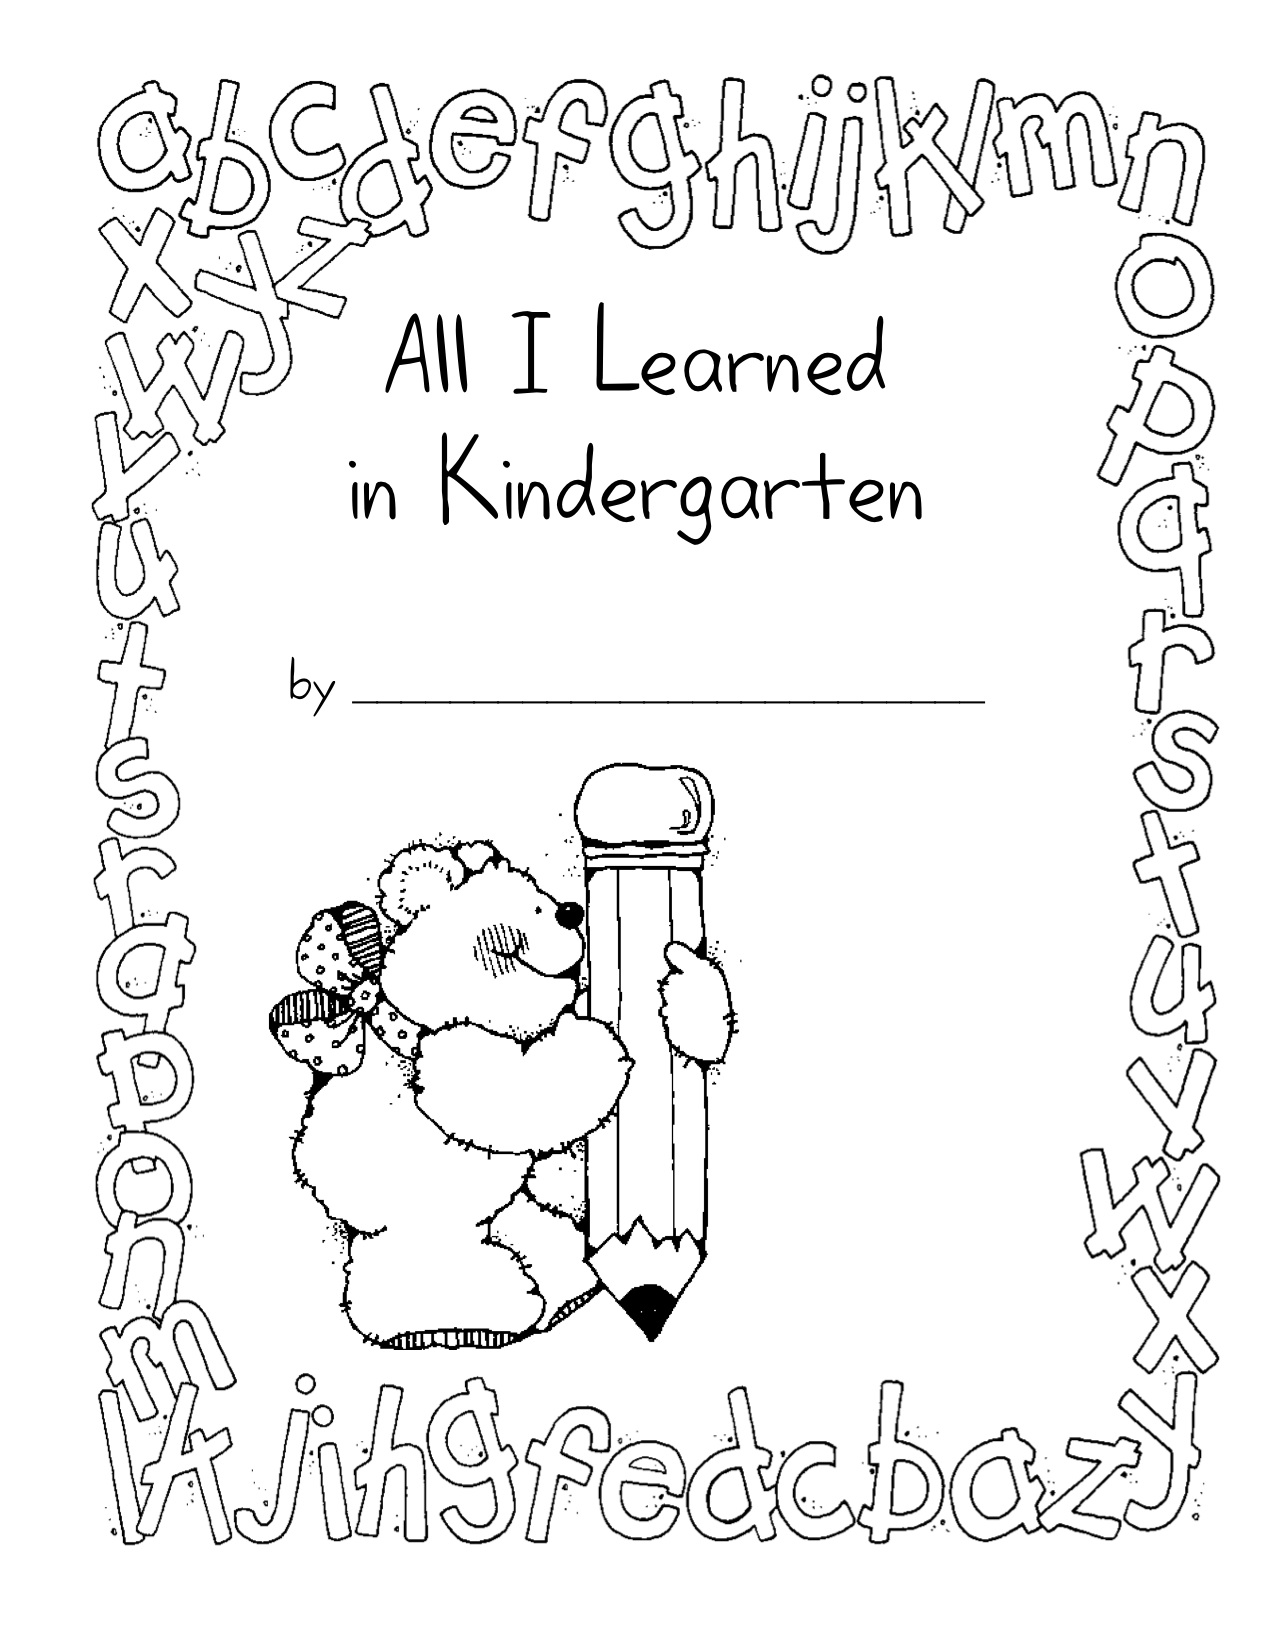 End Of The Year Coloring Pages For Kindergarten : All i learned in kindergarten nana